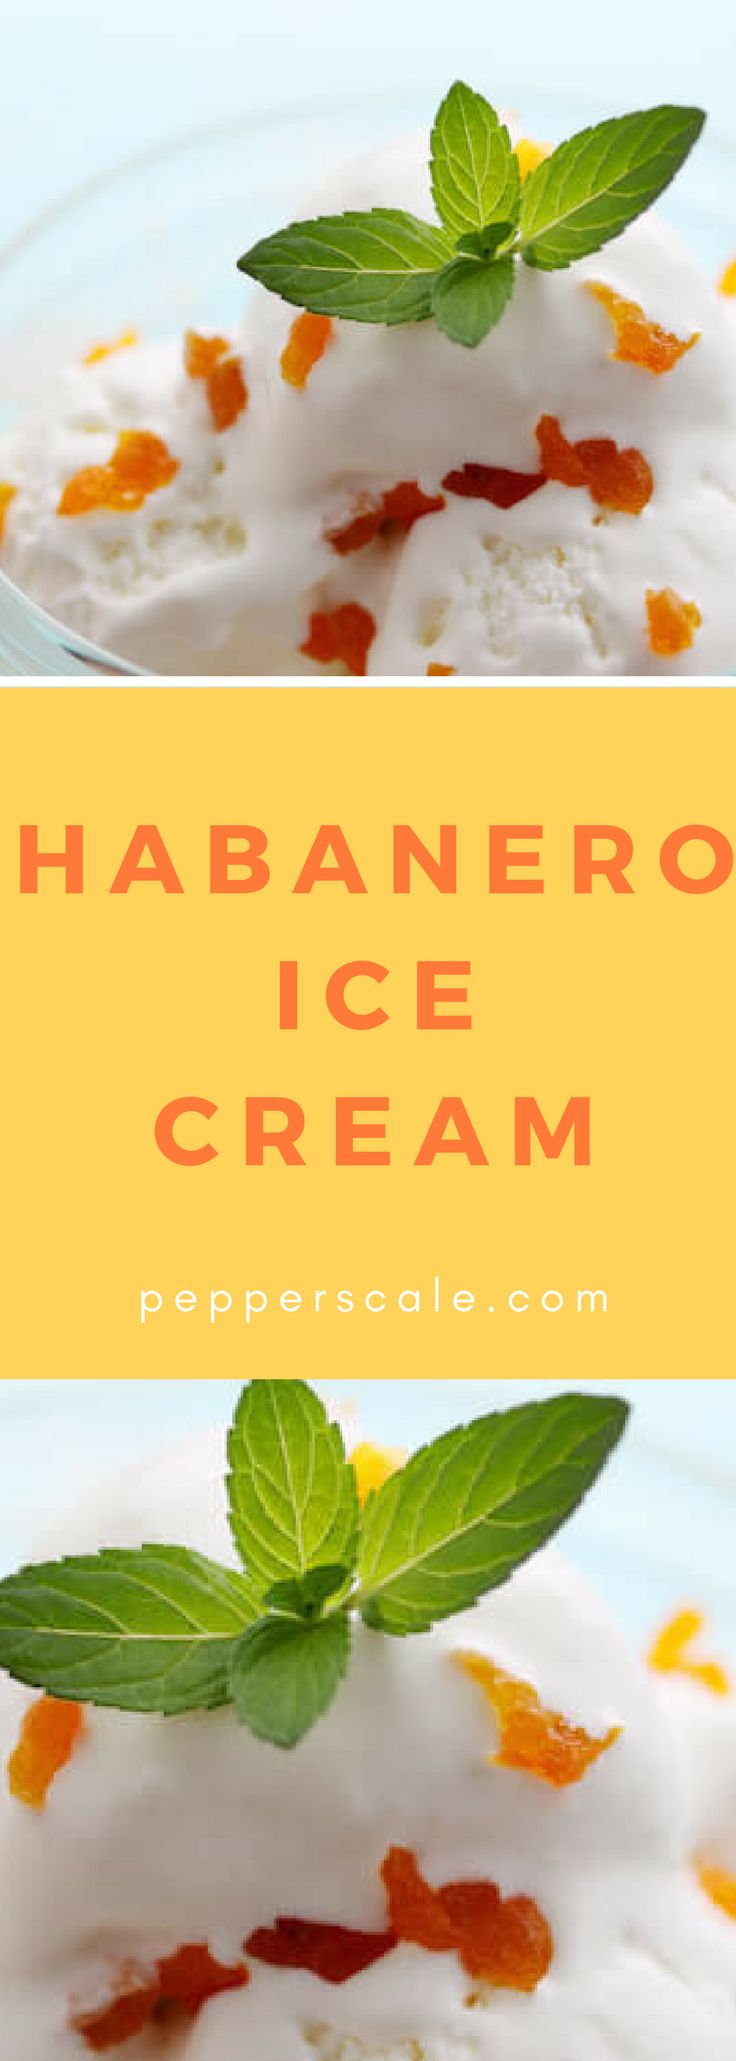 Easy Habanero Ice Cream - Heat up your basic store-bought vanilla! You don't need an ice cream maker to concoct some unique spicy ice cream flavors. All it takes is your favorite store-bought vanilla ice cream, your favorite tropical fruit (pineapple, mango, and orange all work great here), and a few habanero peppers.